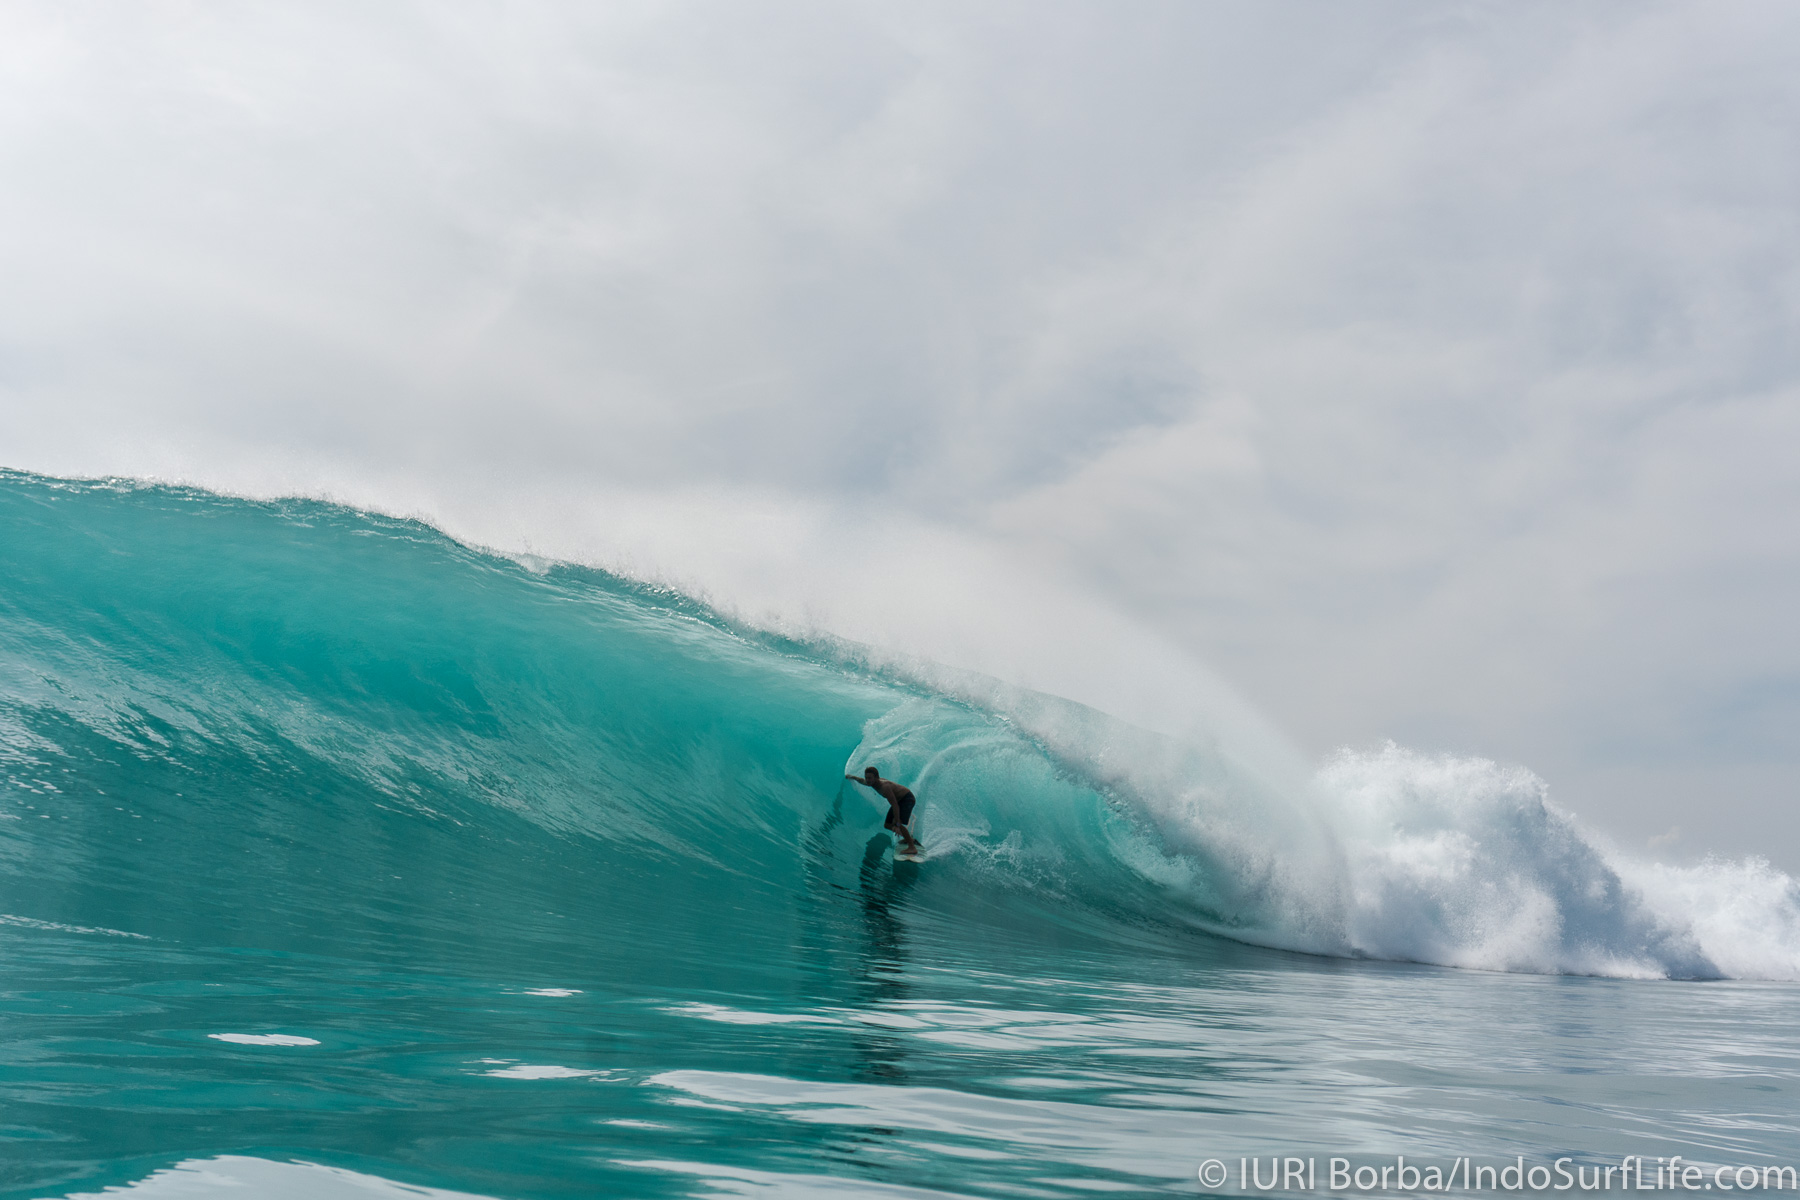 Photos: First Mentawai Swell in 2017